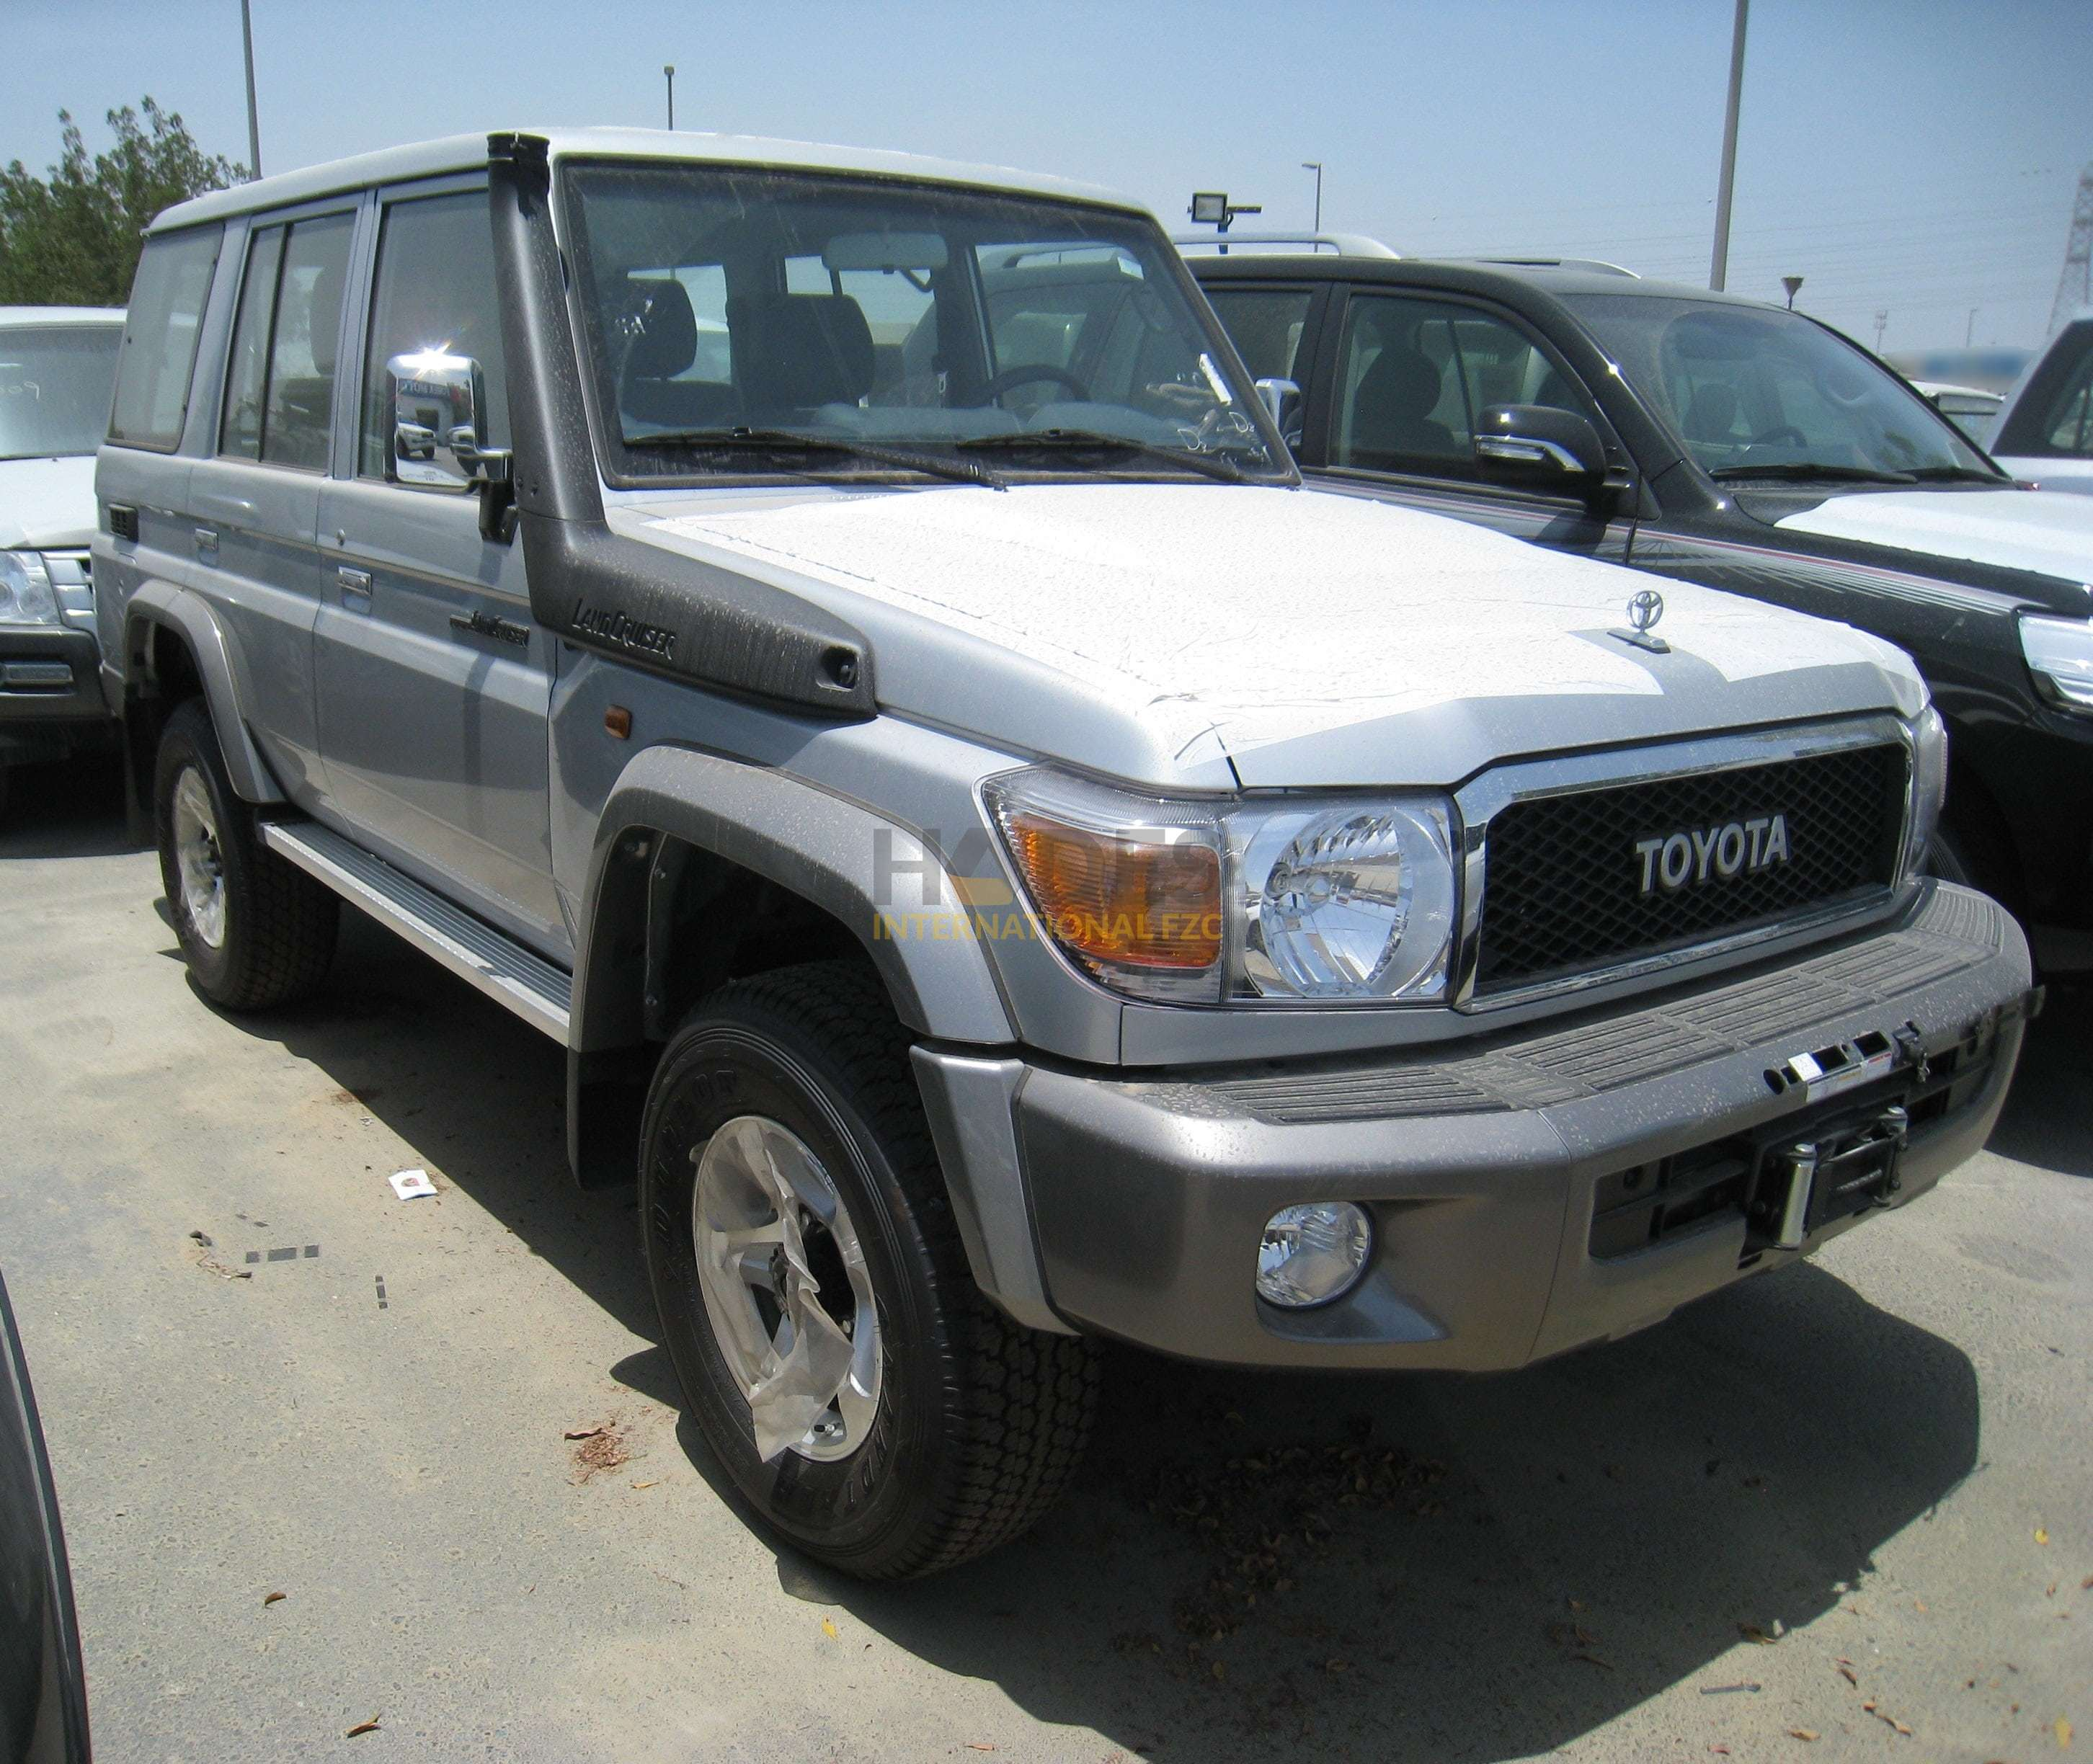 TOYOTA LAND CRUISER 70 SERIES (GRJ76)HARD TOP 4.0L V6 MT 2020 MODEL